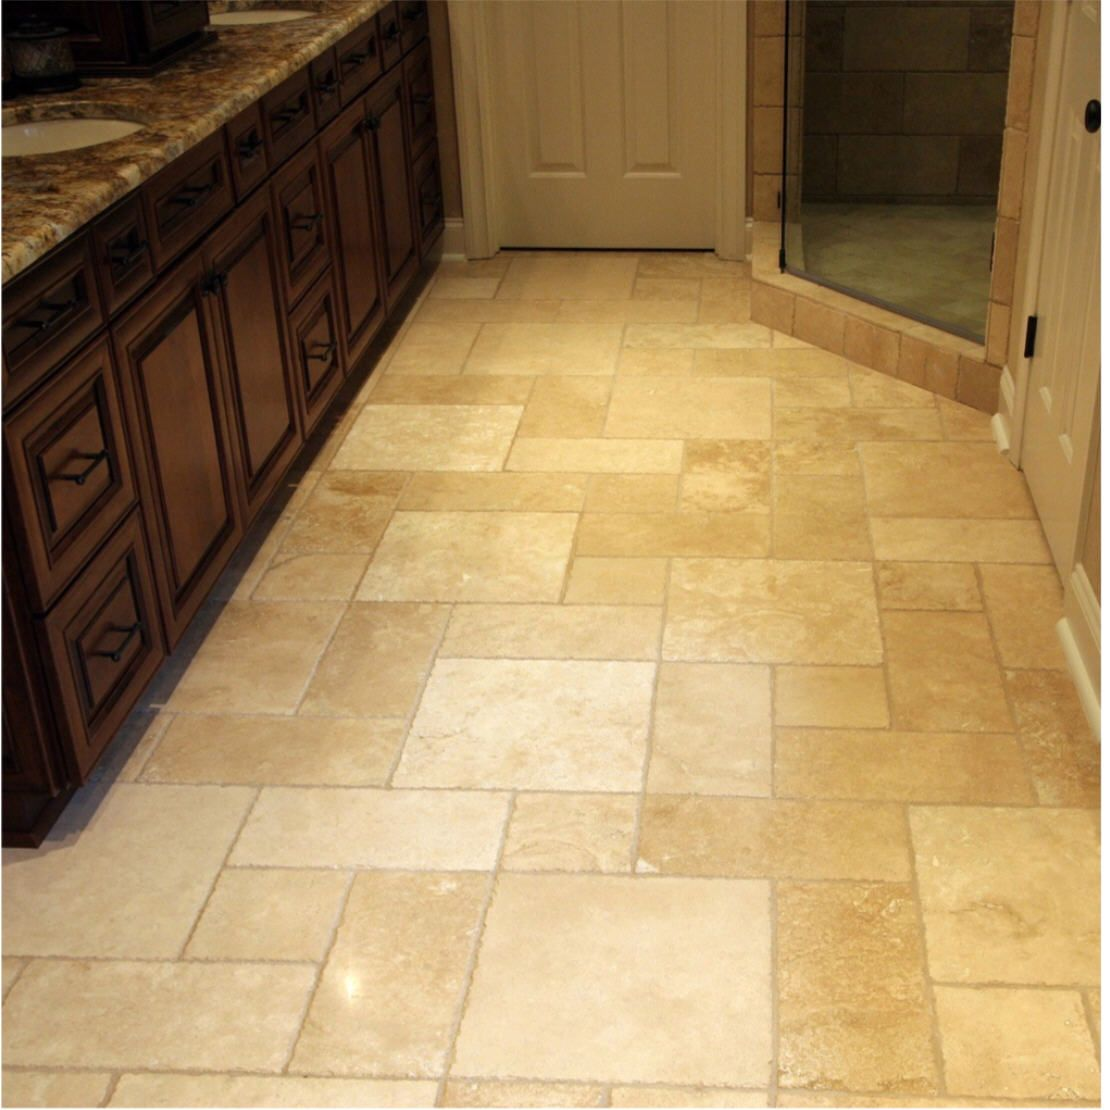 Travertine tile floor pattern called hopscotch affordable design travertine tile floor pattern called hopscotch dailygadgetfo Choice Image